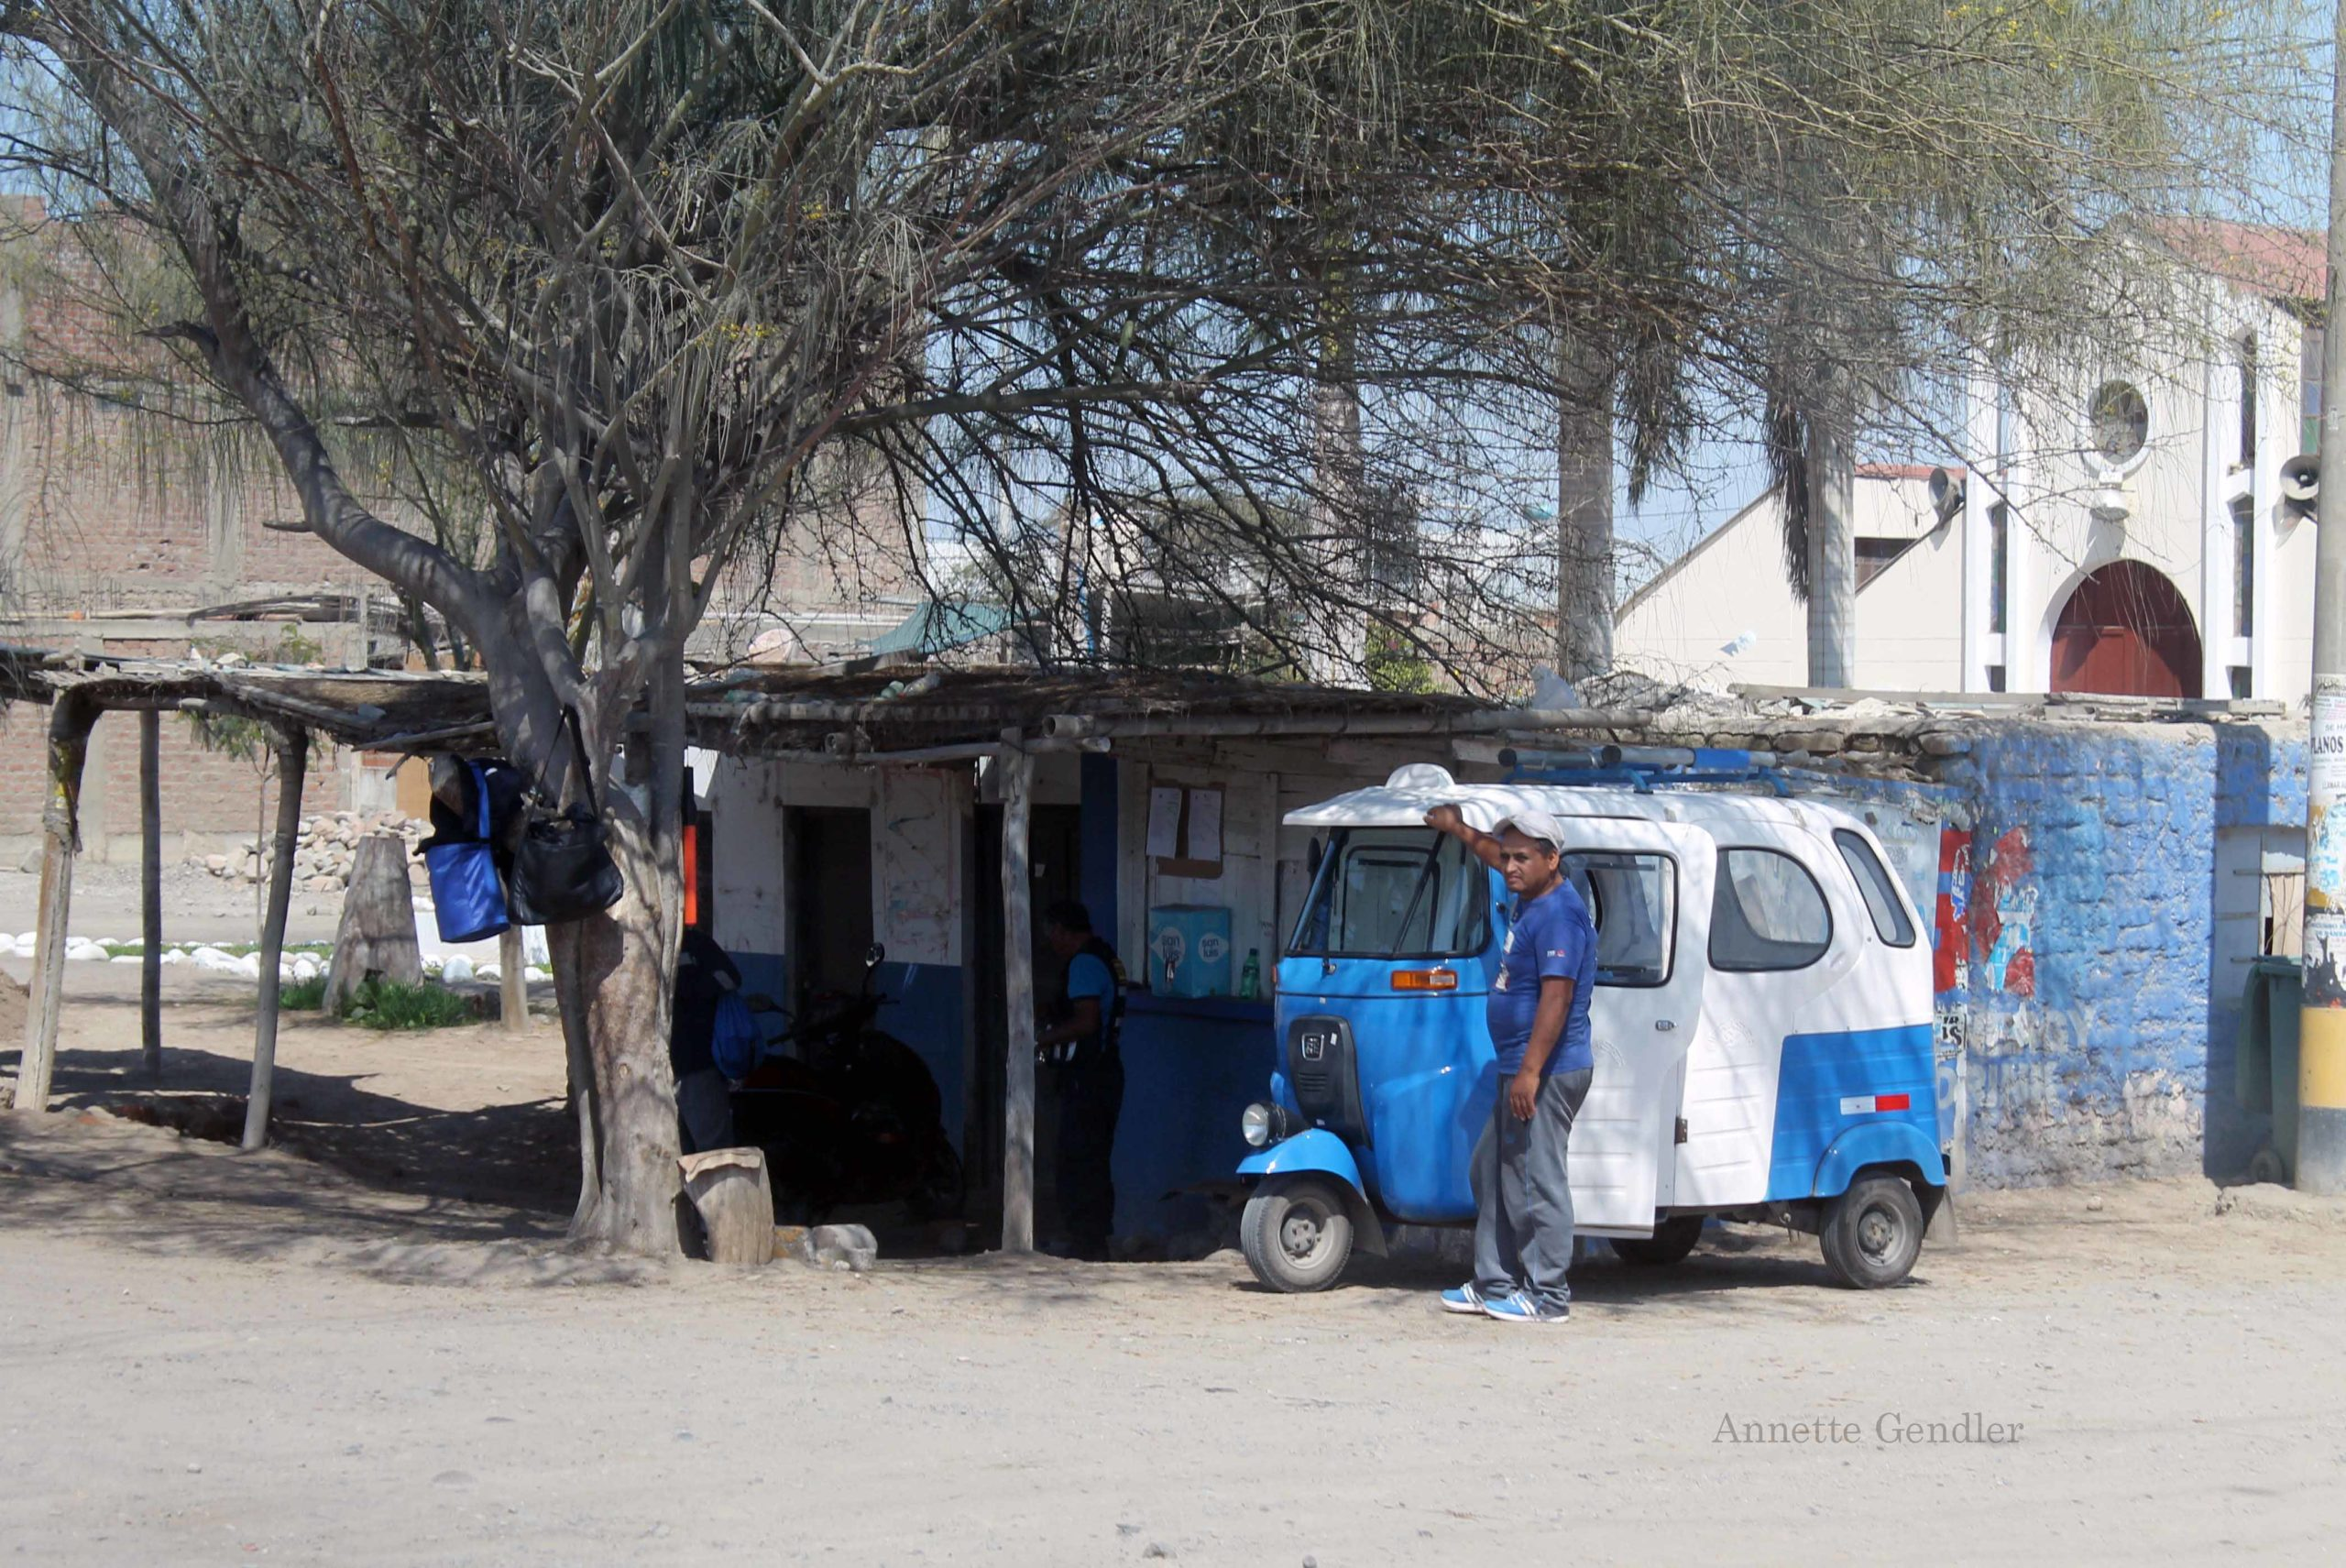 cinder block hut in shanty town painted a happy blue with white and blue tactac car and its driver standing in front